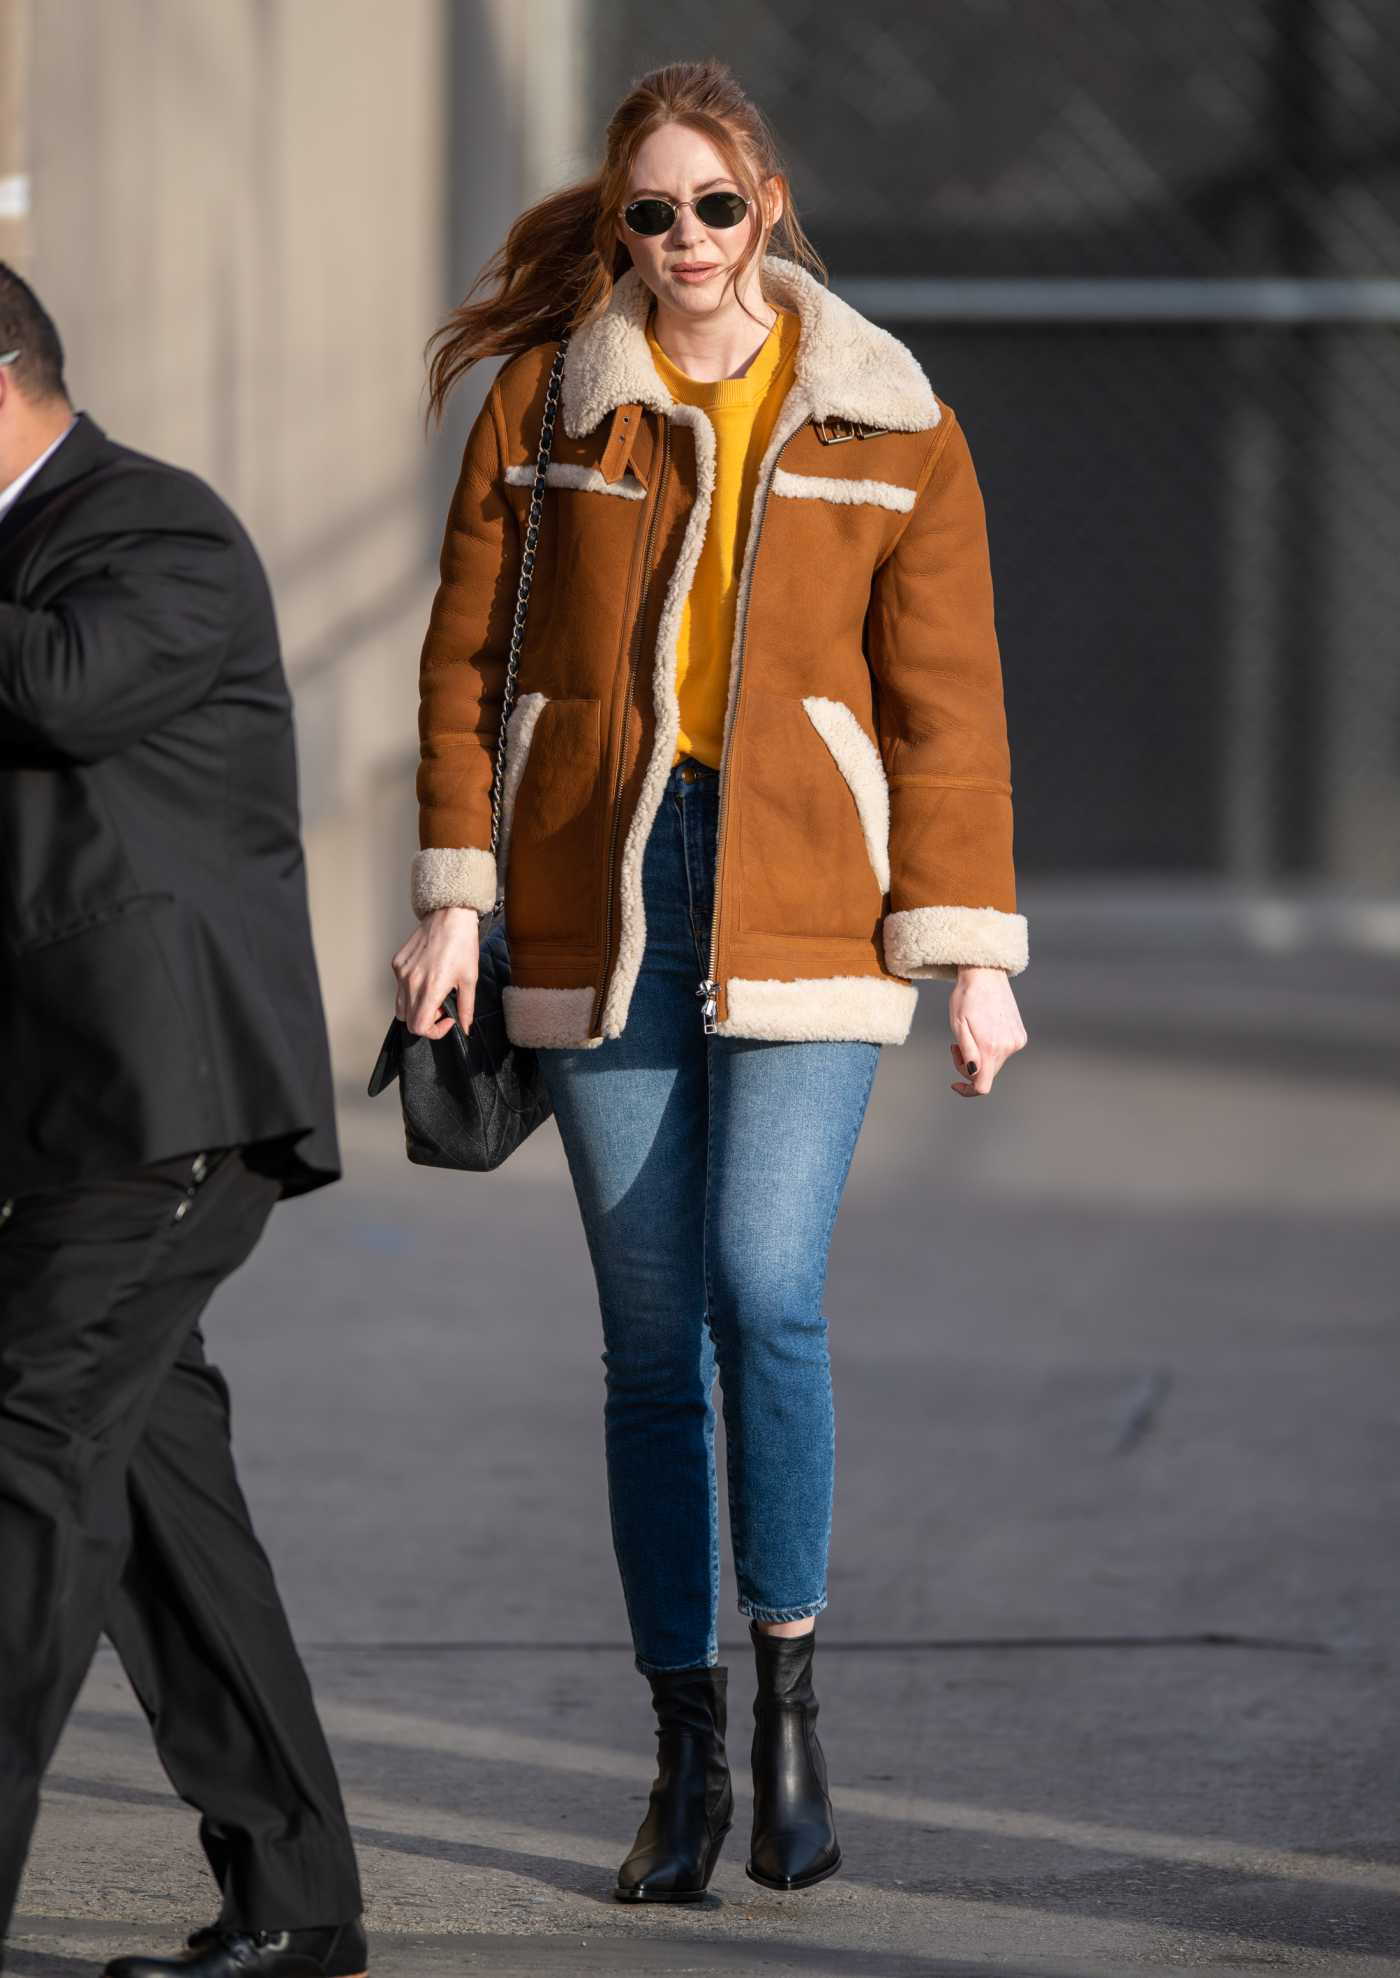 Karen Gillan in a Beige Sheepskin Jacket Arrives at the Jimmy Kimmel Live in Los Angeles 12/17/2019